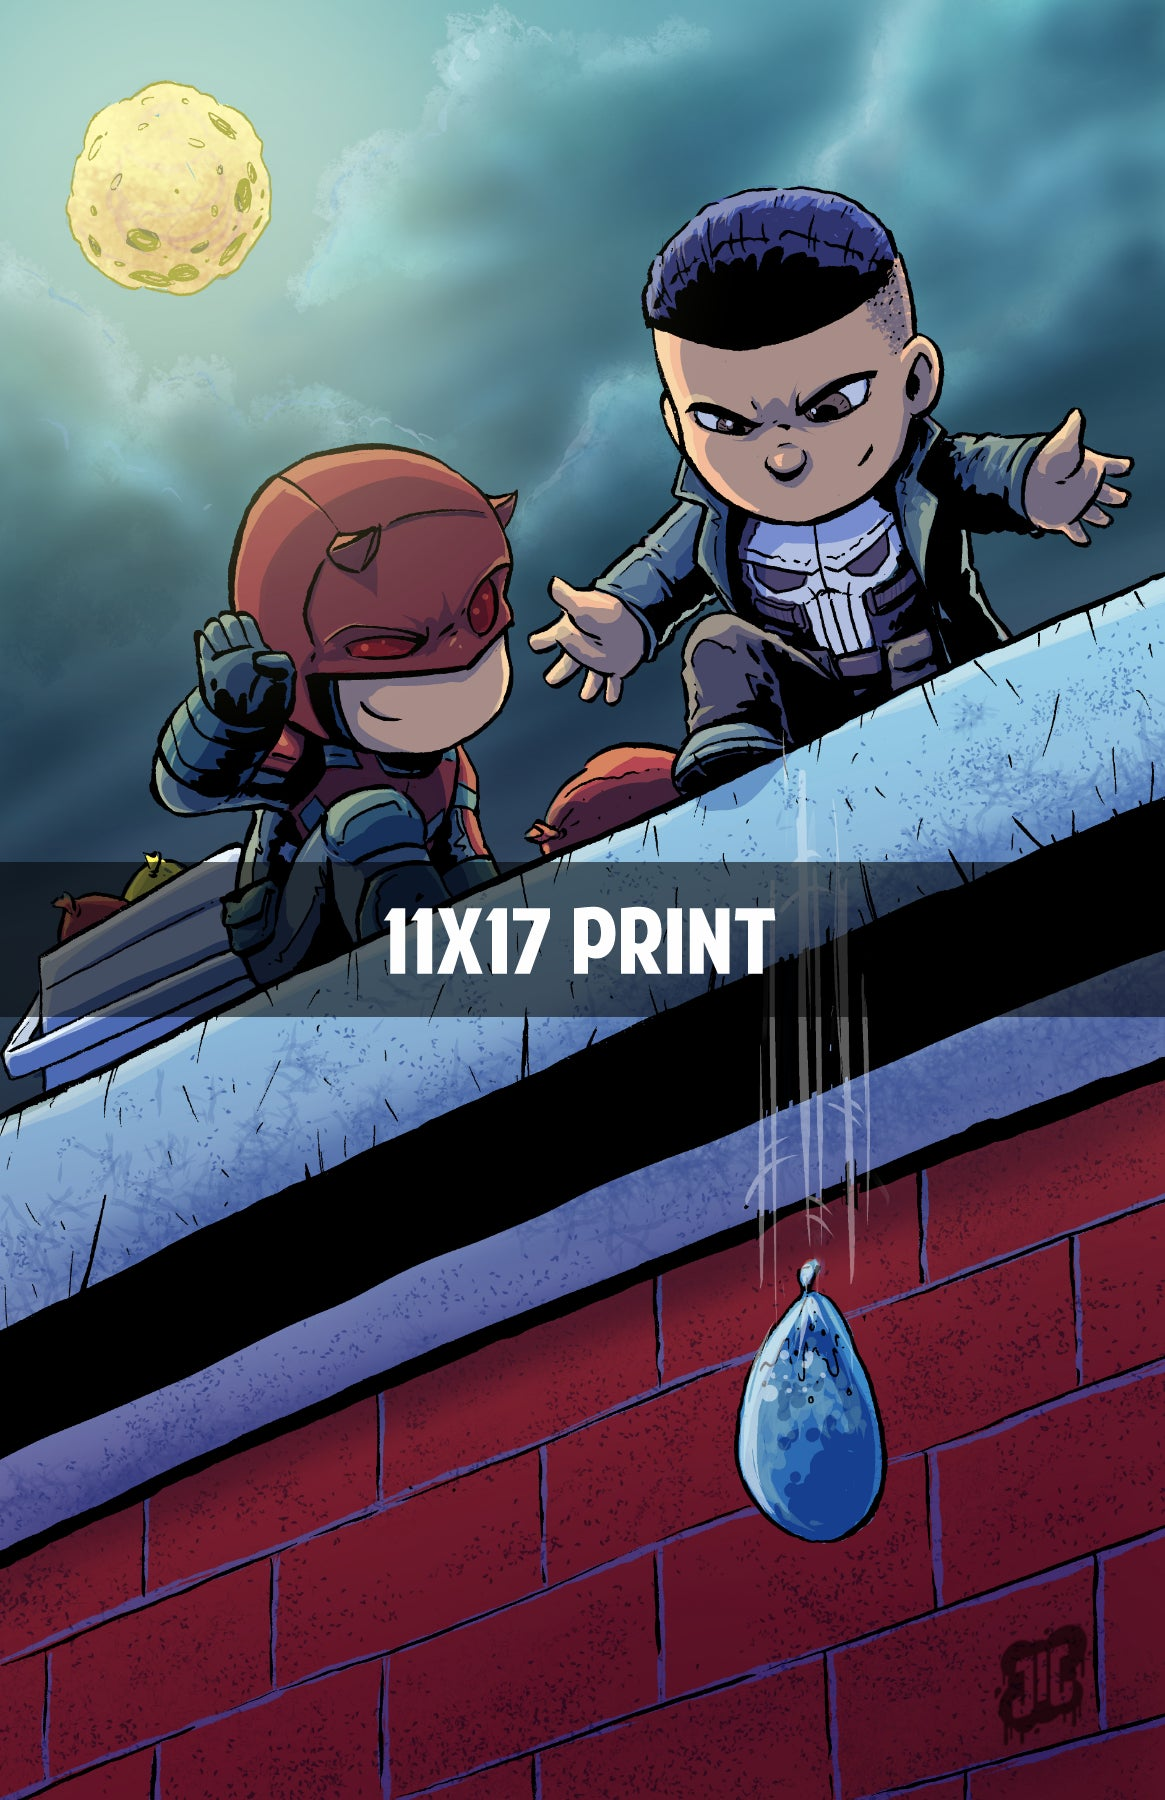 Punisher and Daredevil - 11x17 Print